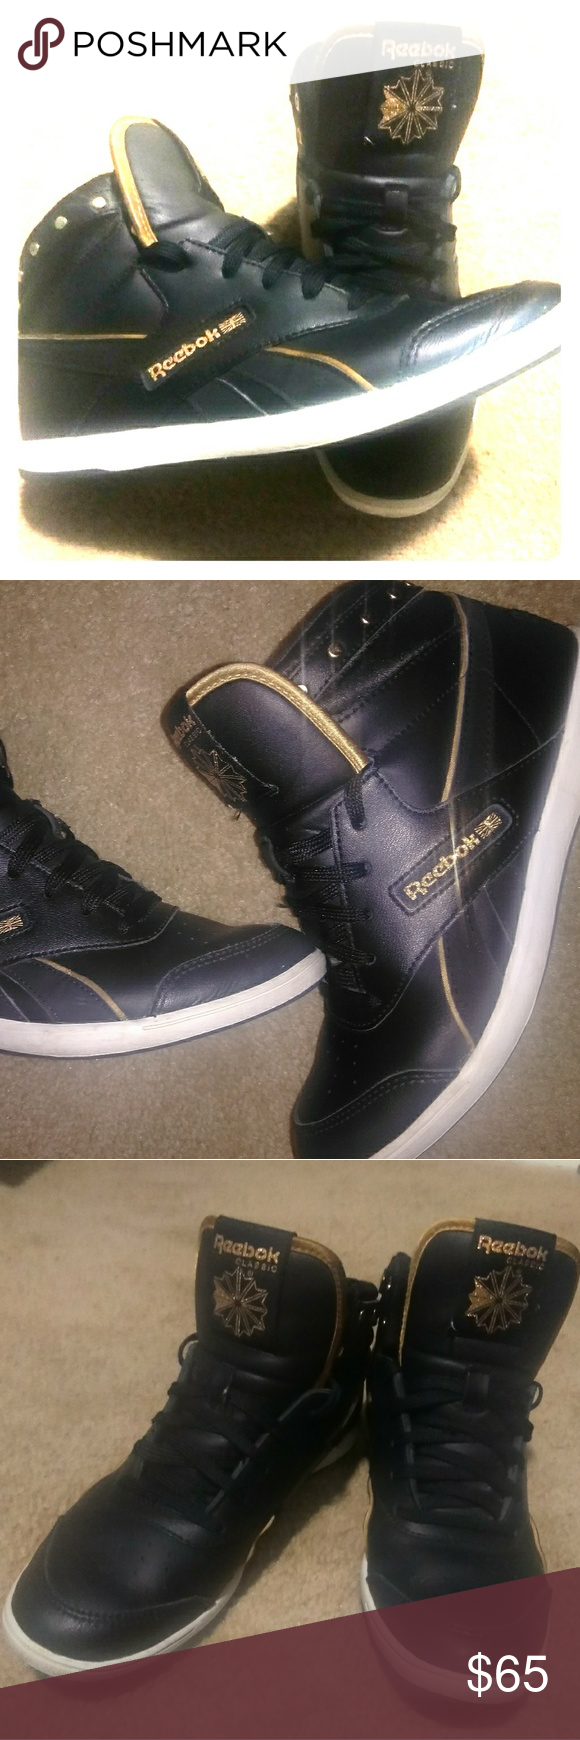 REEBOK CLASSIC KICKIN  IT OLD SKOOL HIGHTOPS! USED LIGHTLY. EXCELLENT  CONDITION. PLEASE d03fd34c4